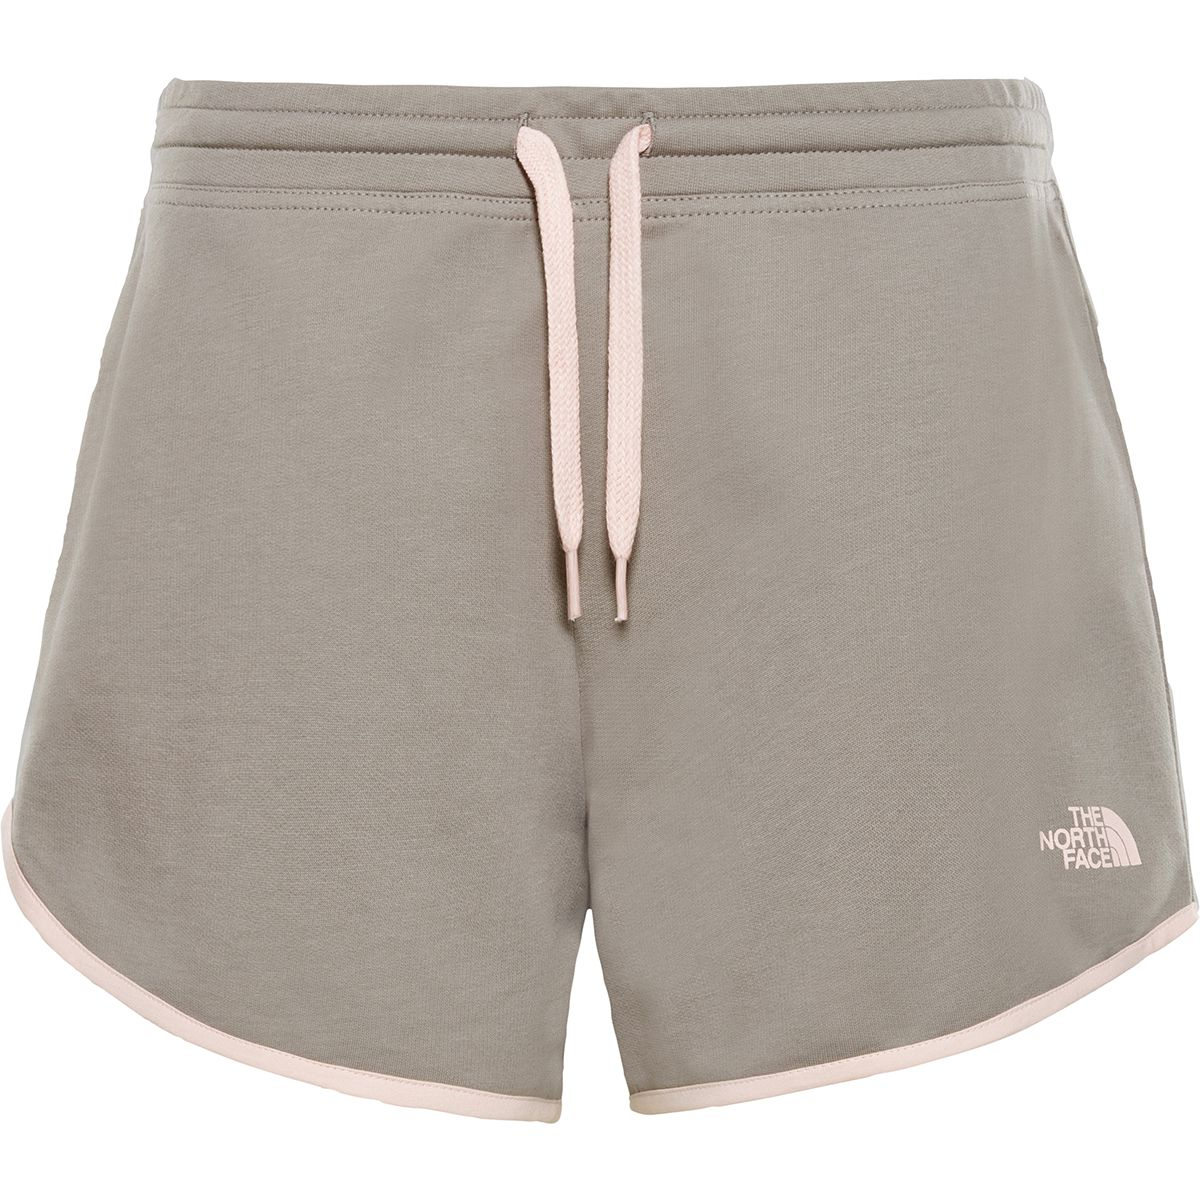 The North Face Damen Nse Shorts Lauf Running Hose NEU